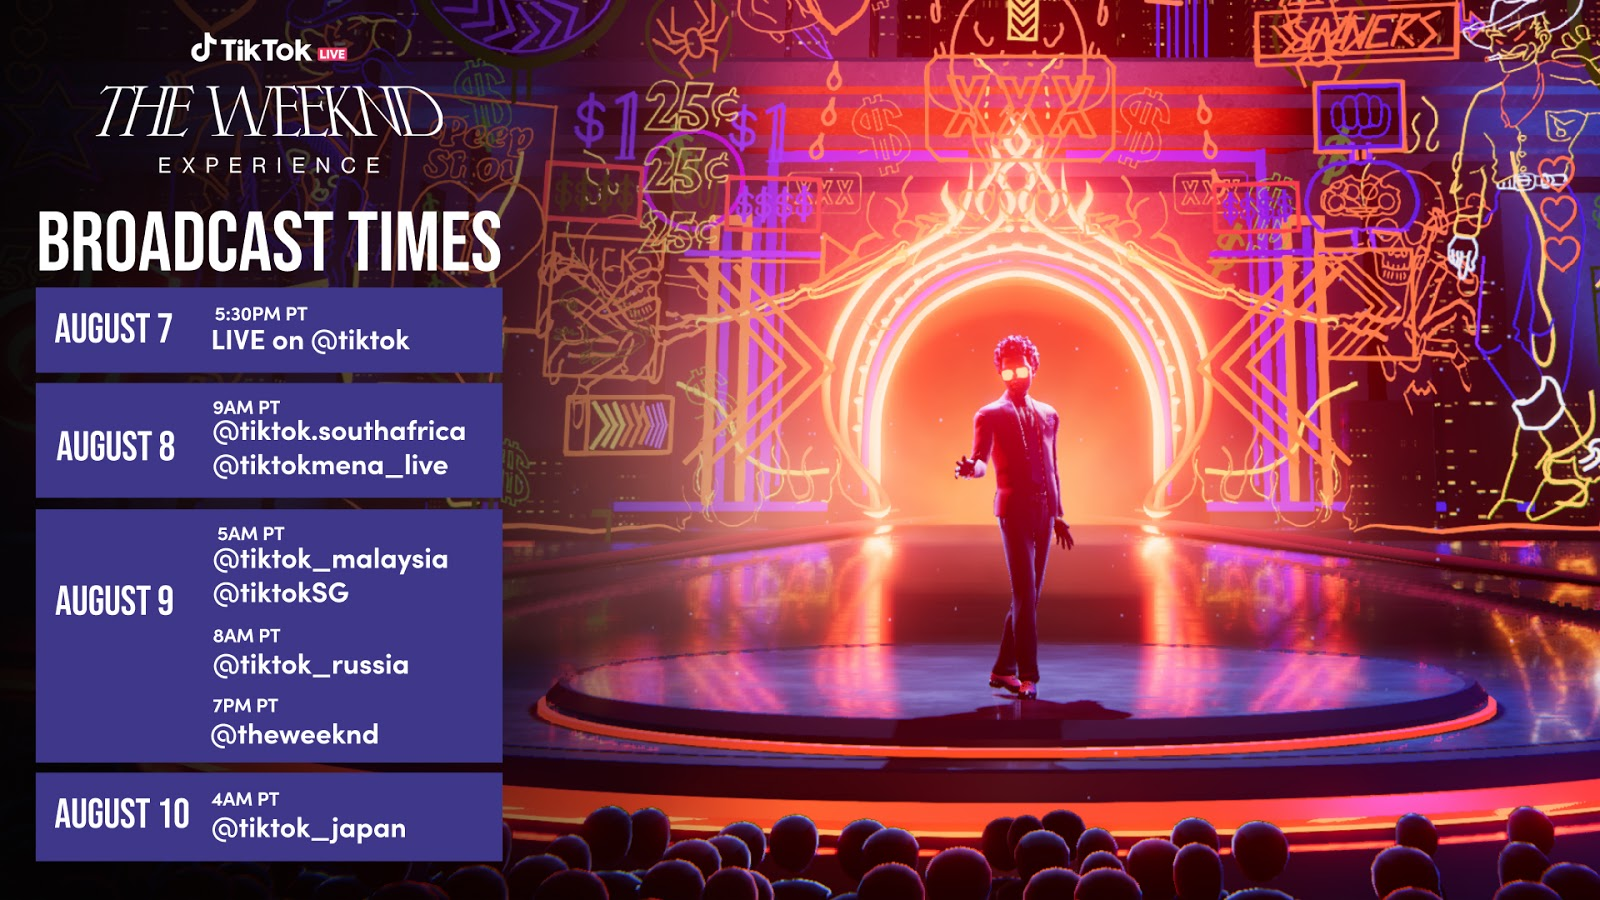 TikTok The Weeknd virtual concert showing times